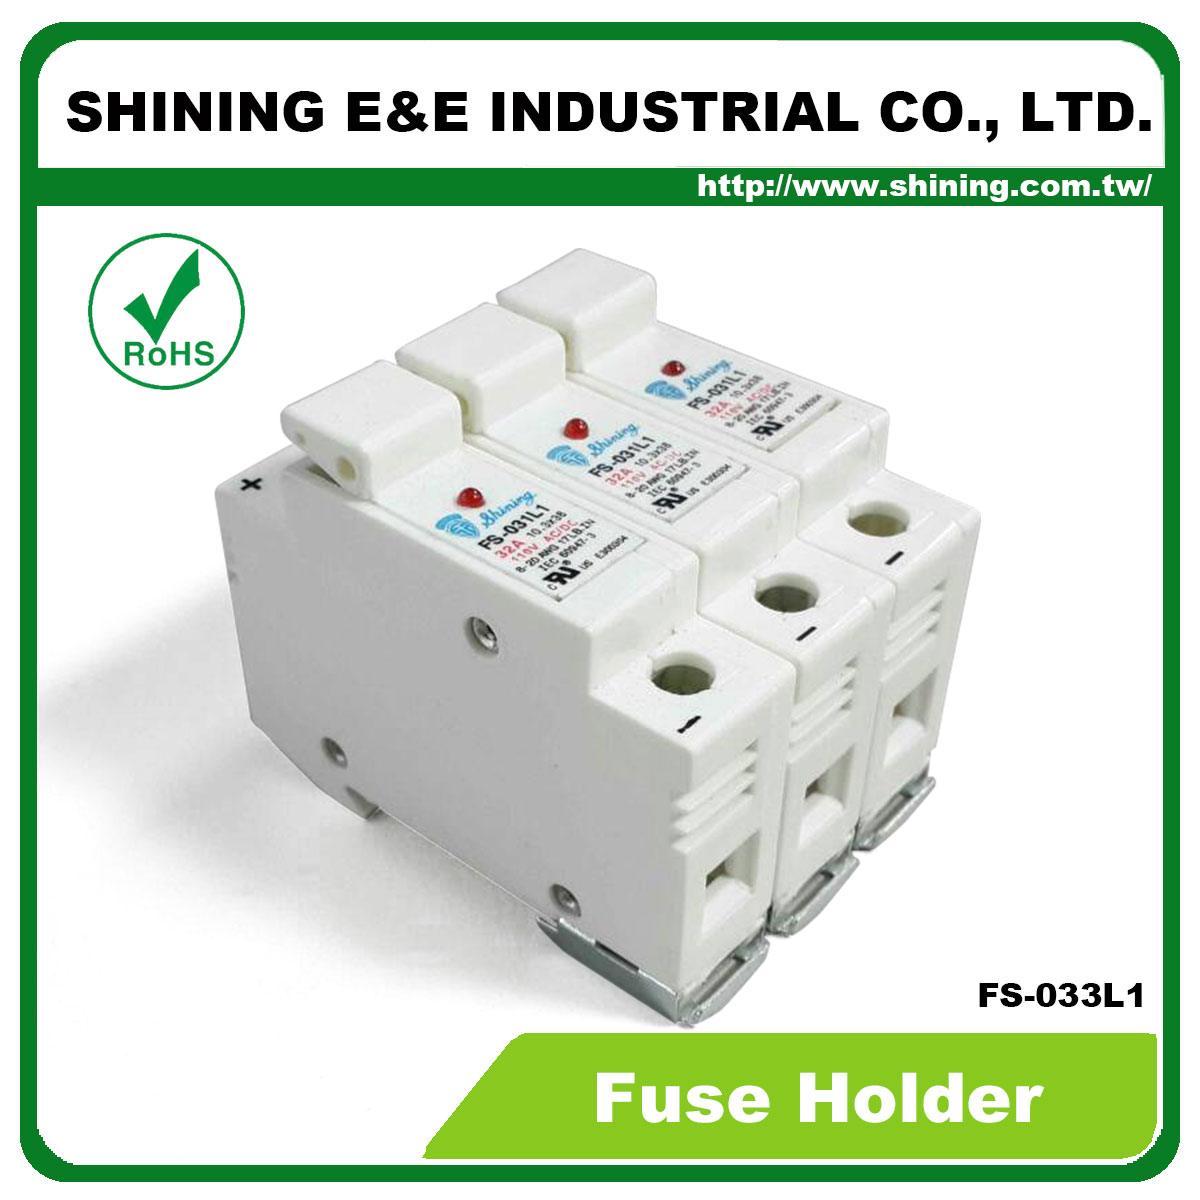 Electronic Cartridge Fuses Not Lossing Wiring Diagram Din Mount Fuse Holder Box Rail Mounted Holders Free Engine Image For Blade